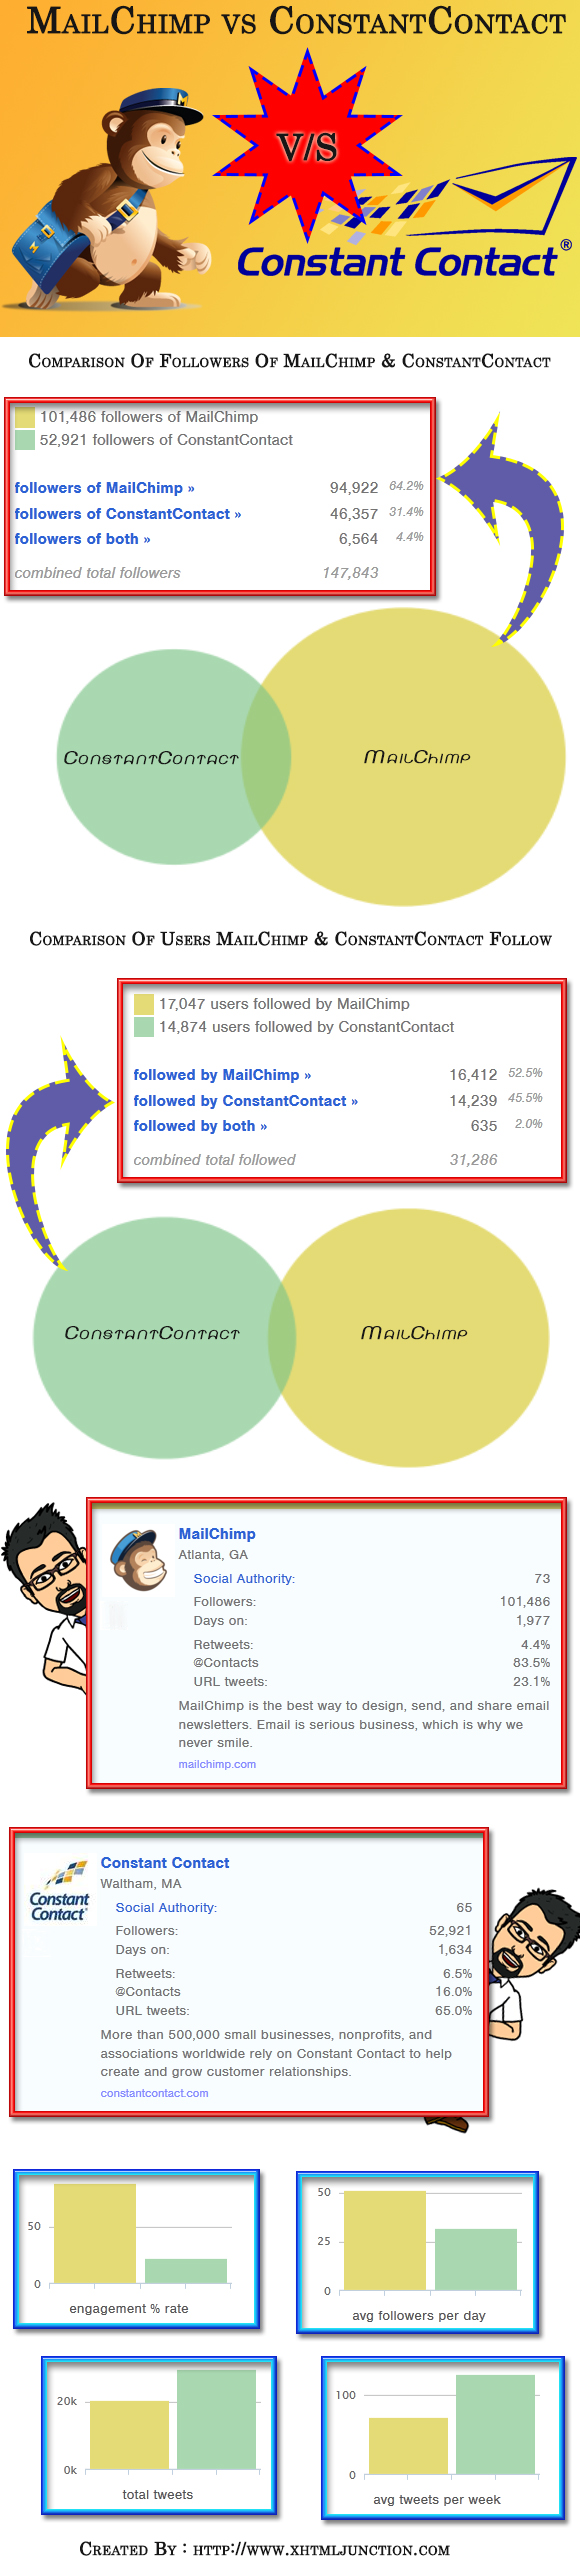 Mailchimp vs Constant Contact Infographic: The Popularity Review